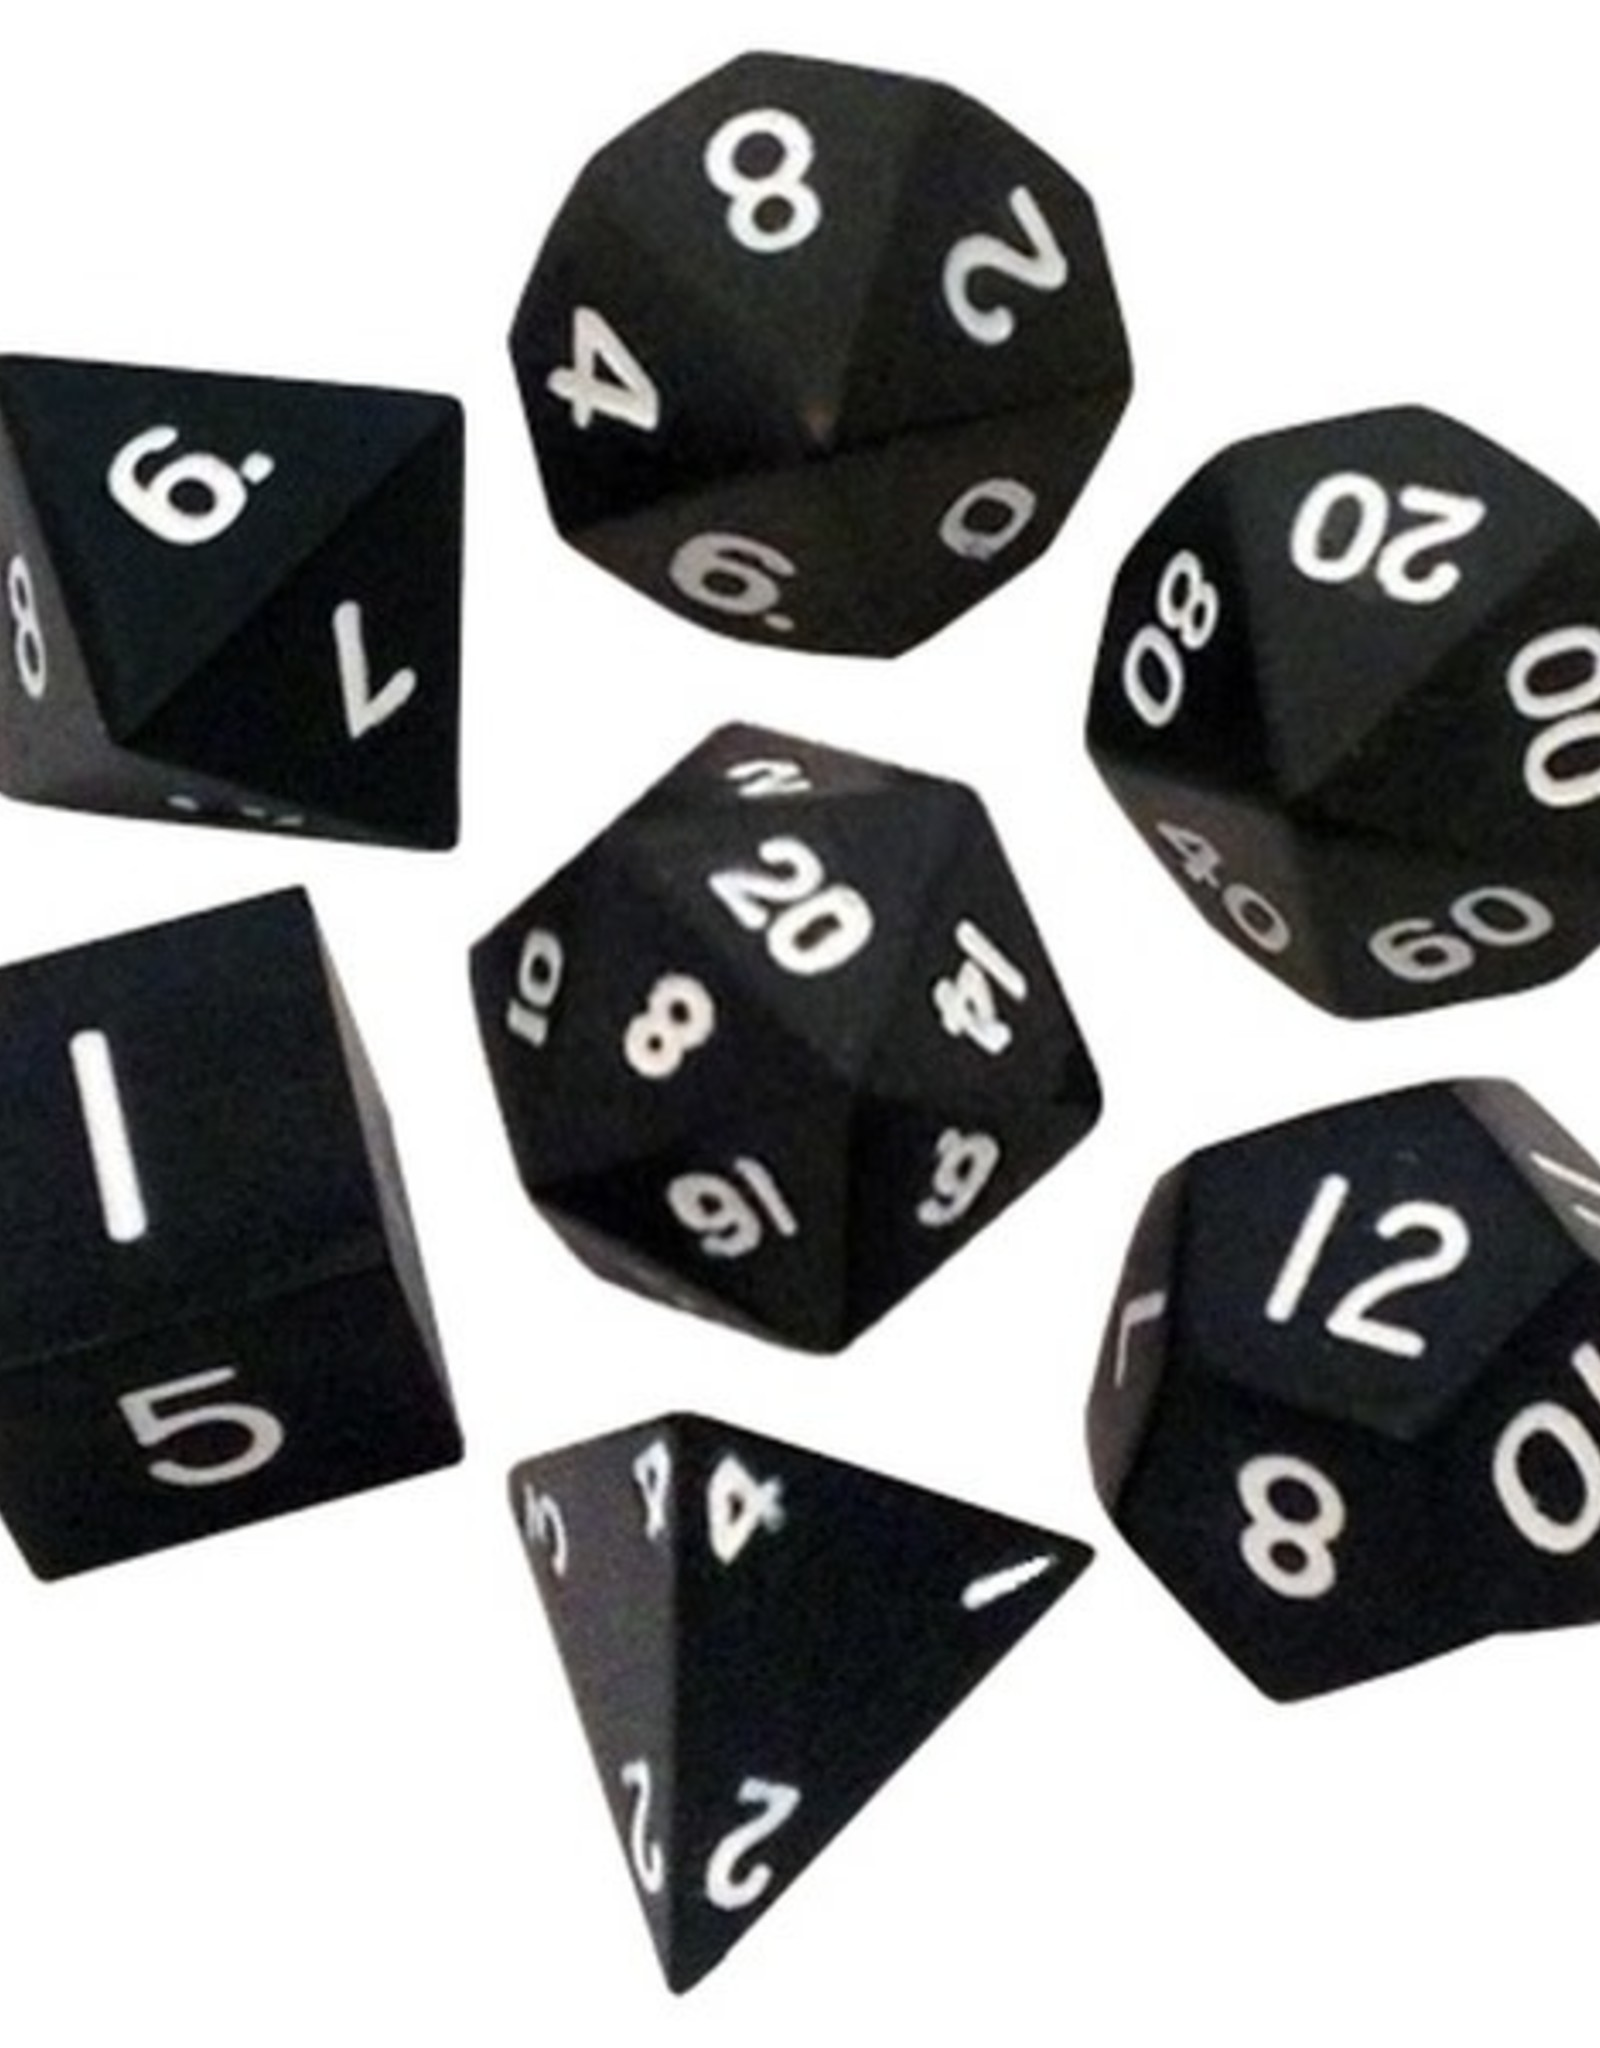 Metallic Dice Games Poly Metal Dice Black